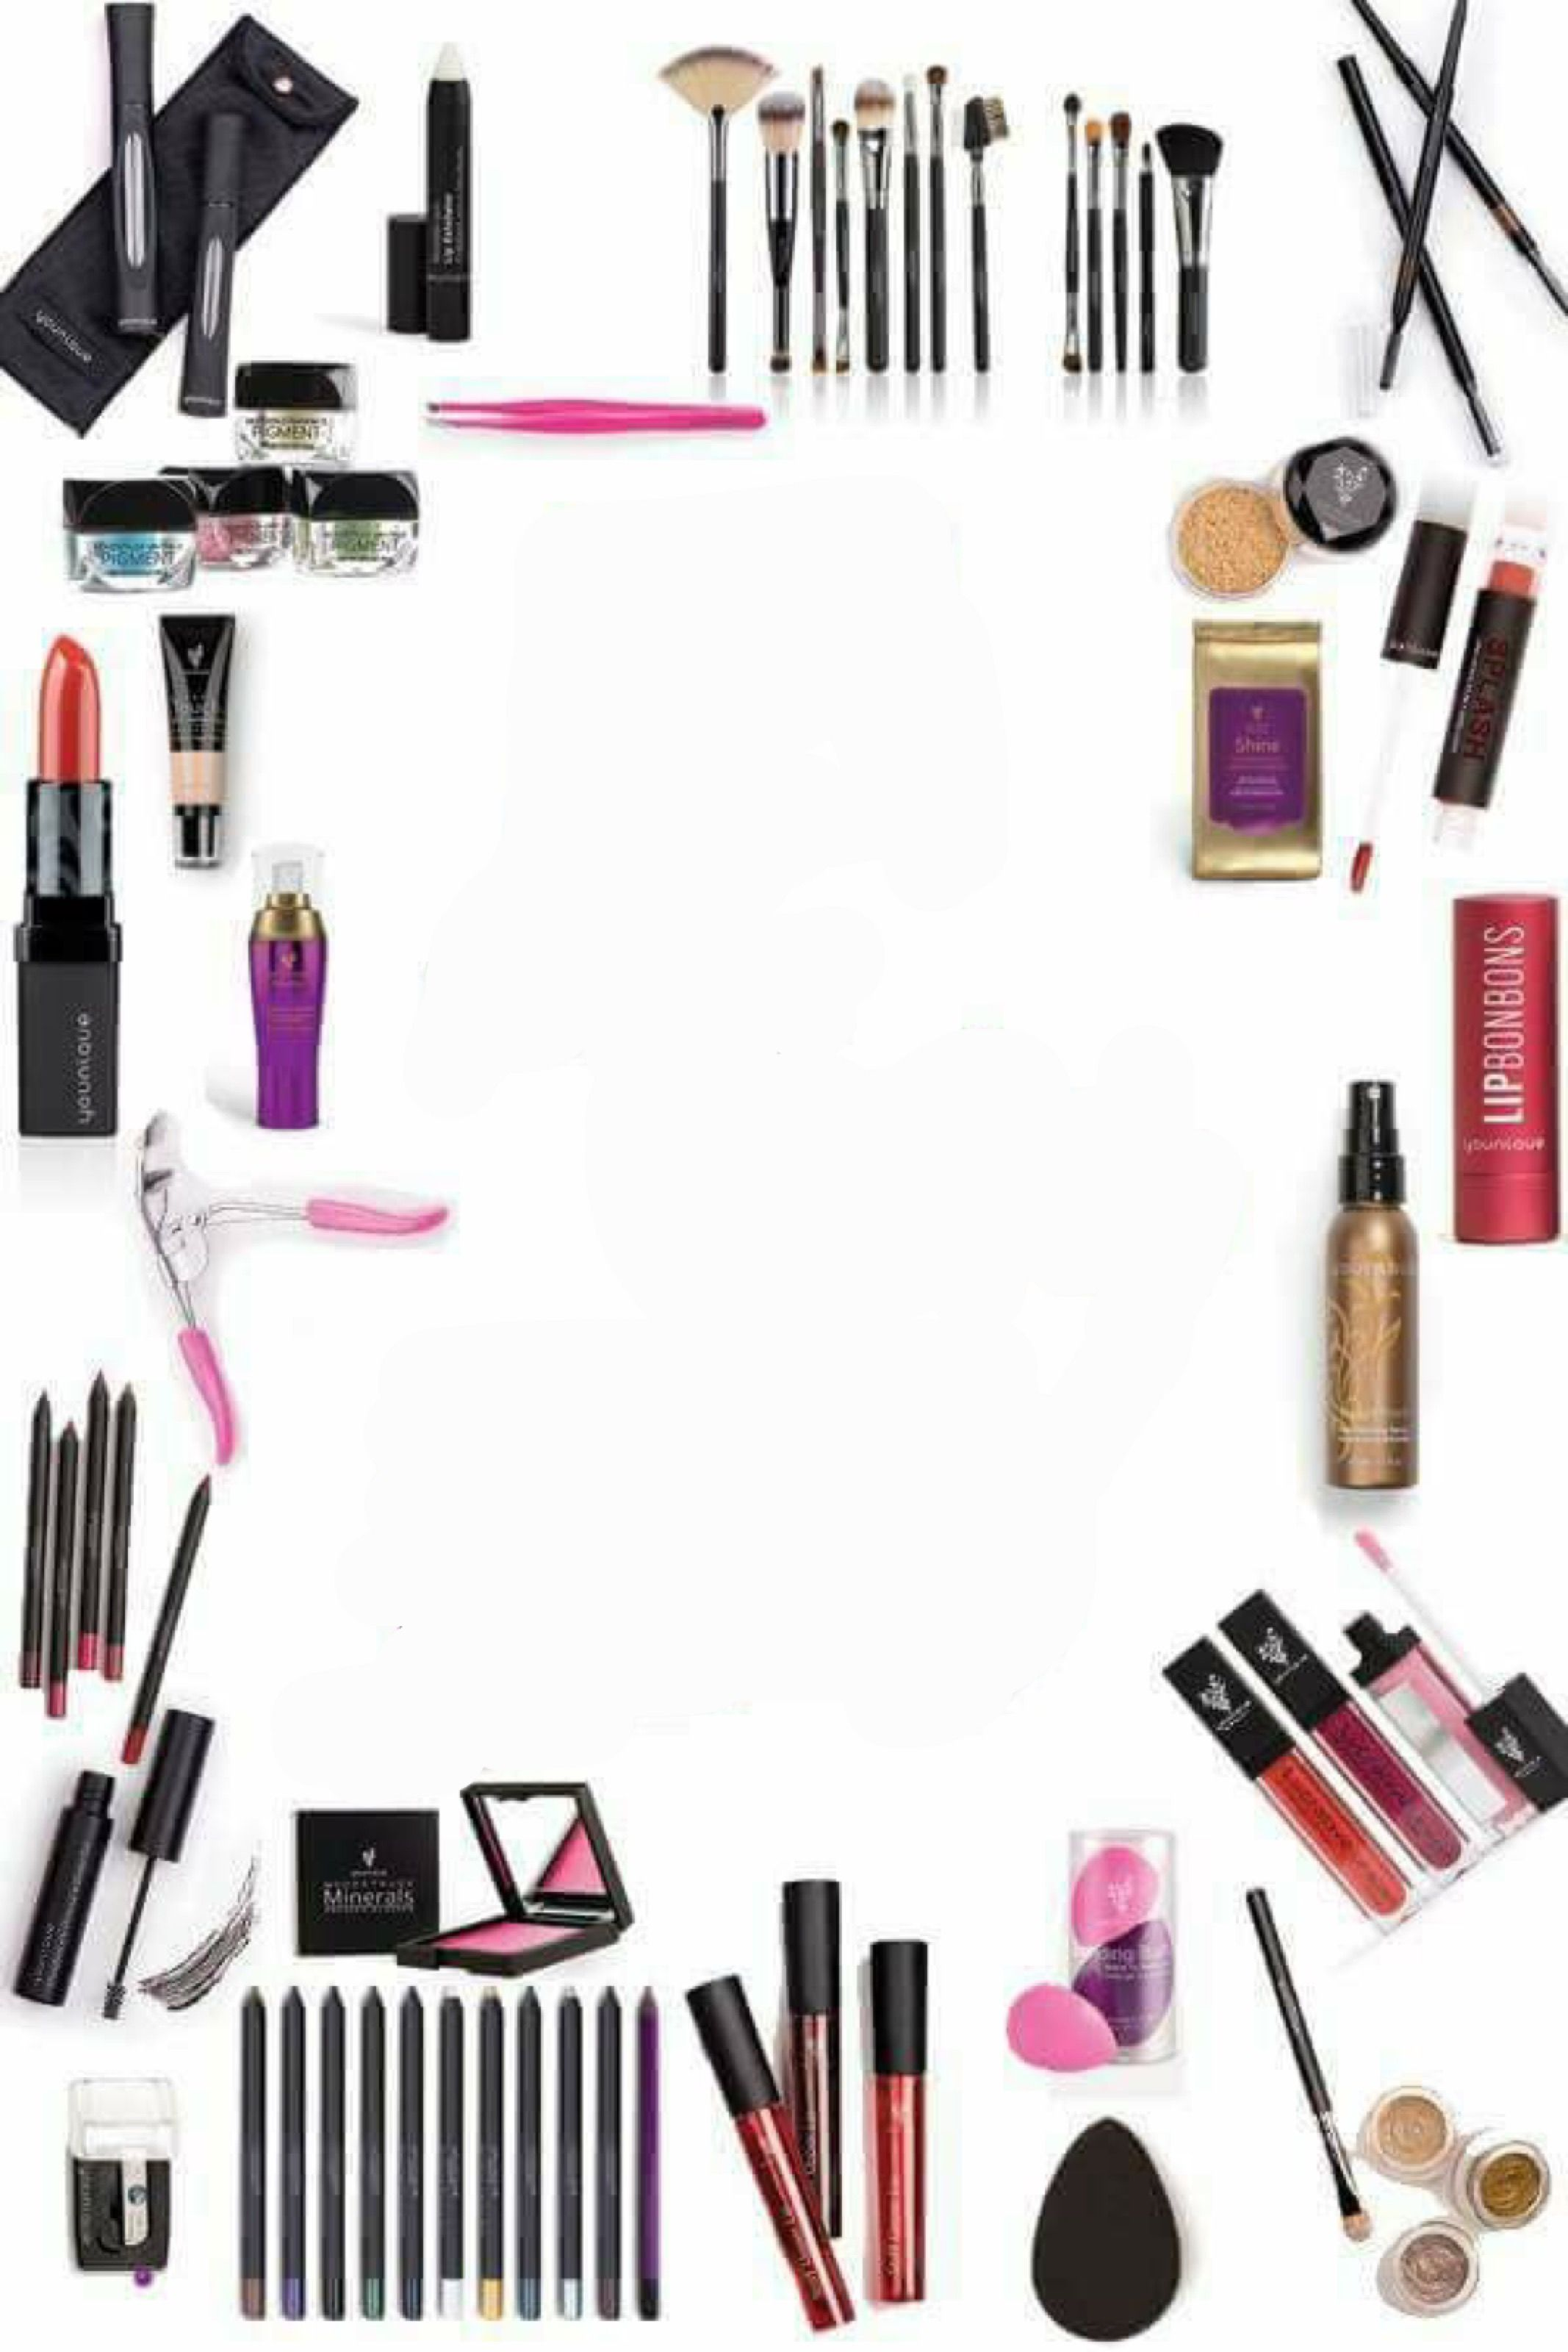 Makeup Beauty Cosmetics Photo Credit Saved To Pinterest Com By Youniquelifewithrachel Com Younique Younique Beauty Younique Makeup